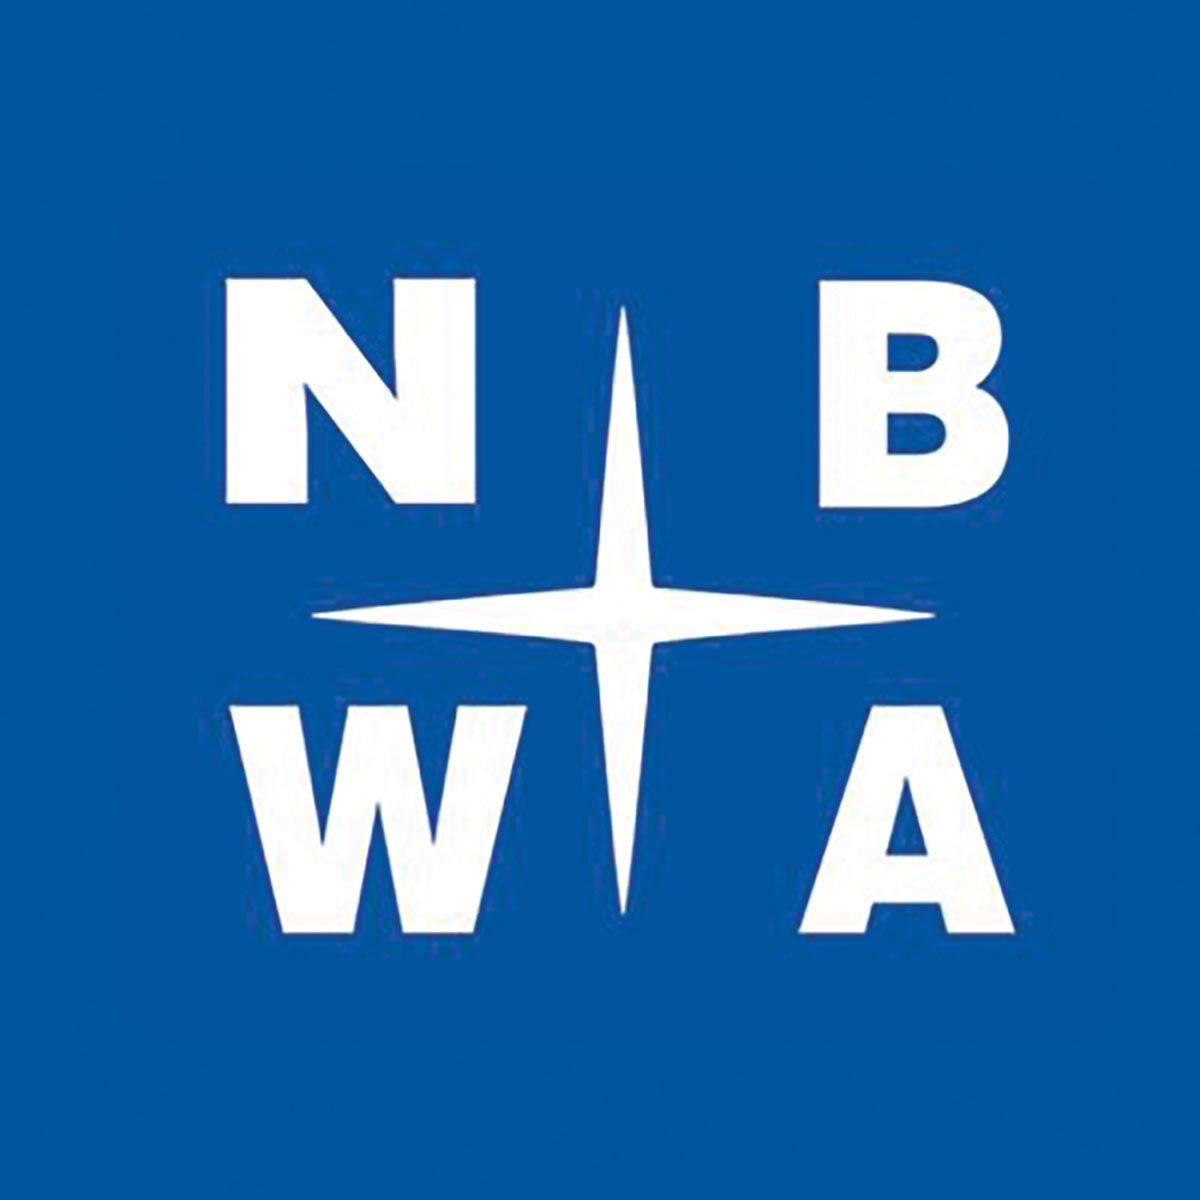 NBWA Highlights Beer Industry's Connecticut Impact